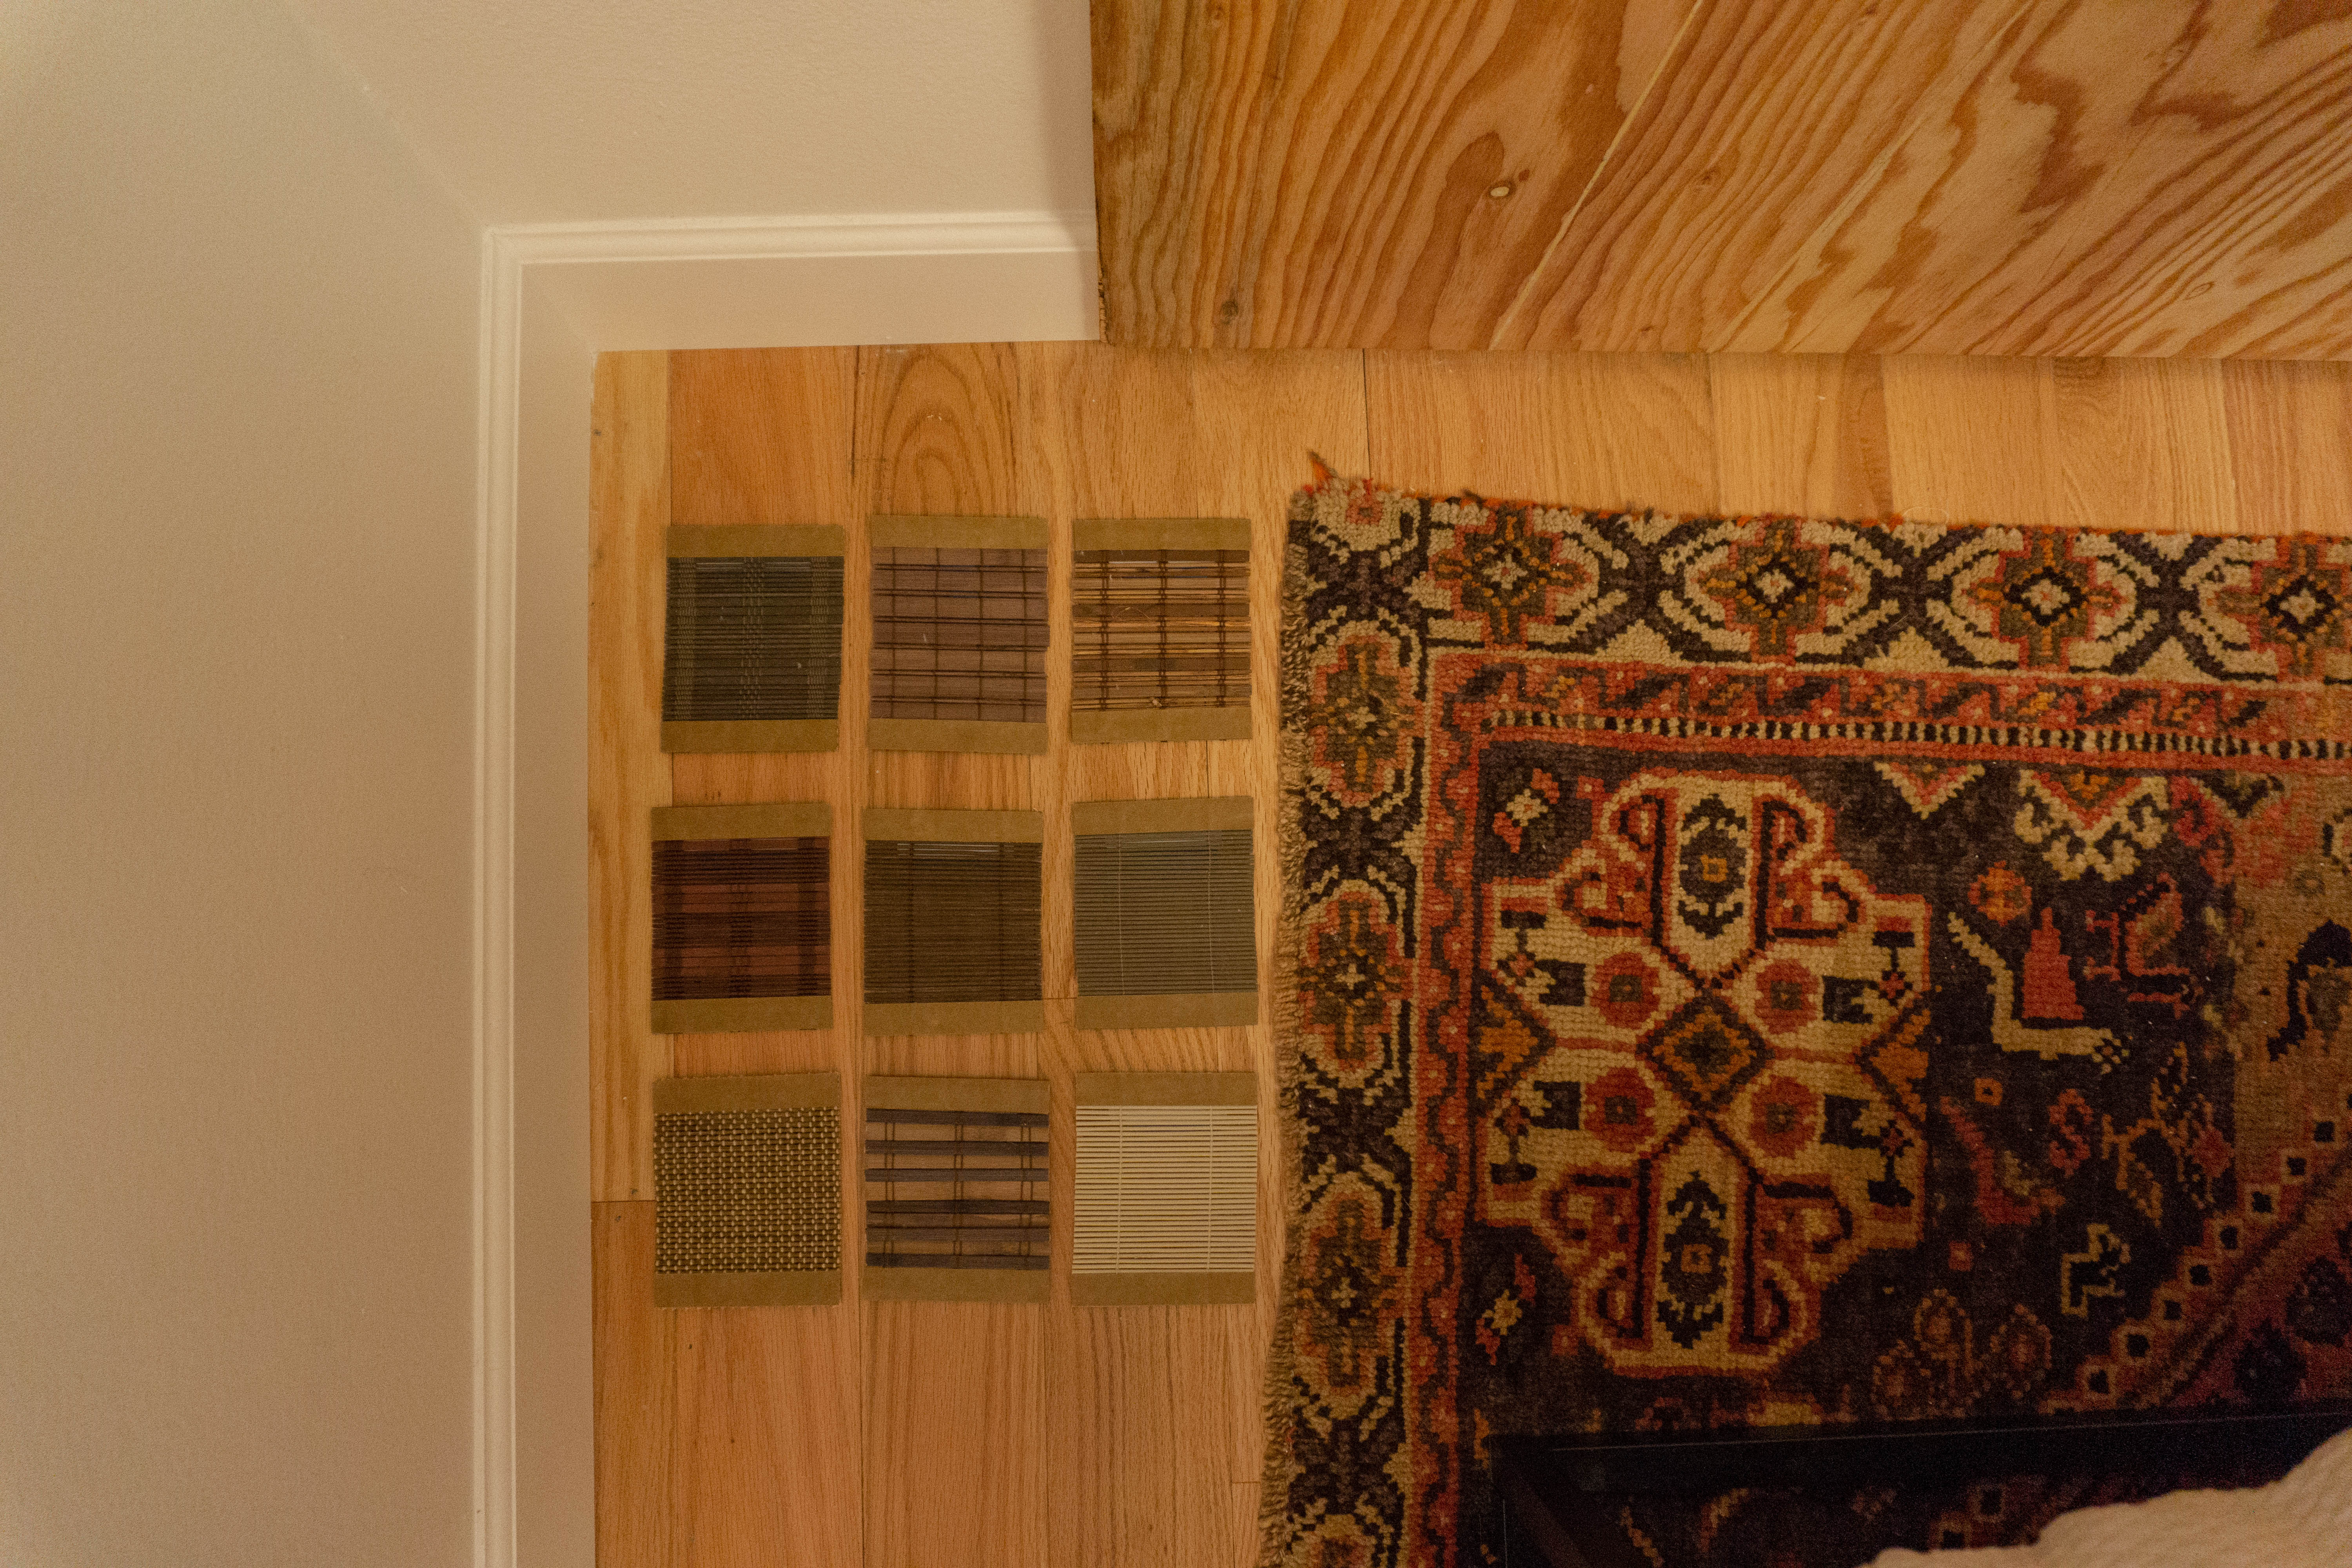 Woven Wood Shade Samples on Floor next to Rug